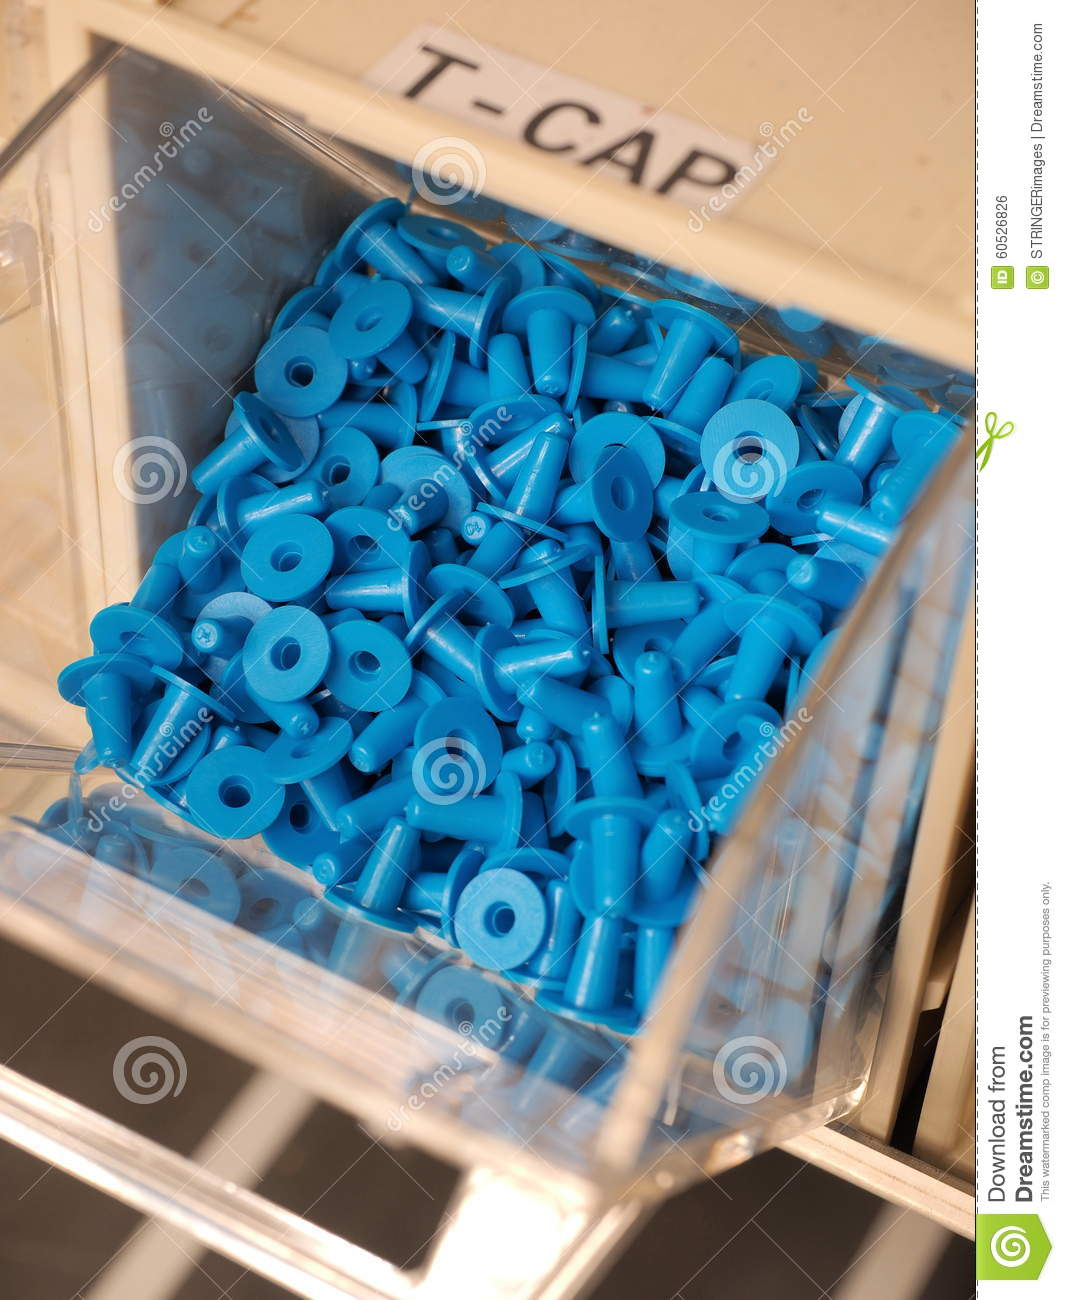 Blue T Shaped Plastic Plugs In A Storage Organizer Stock